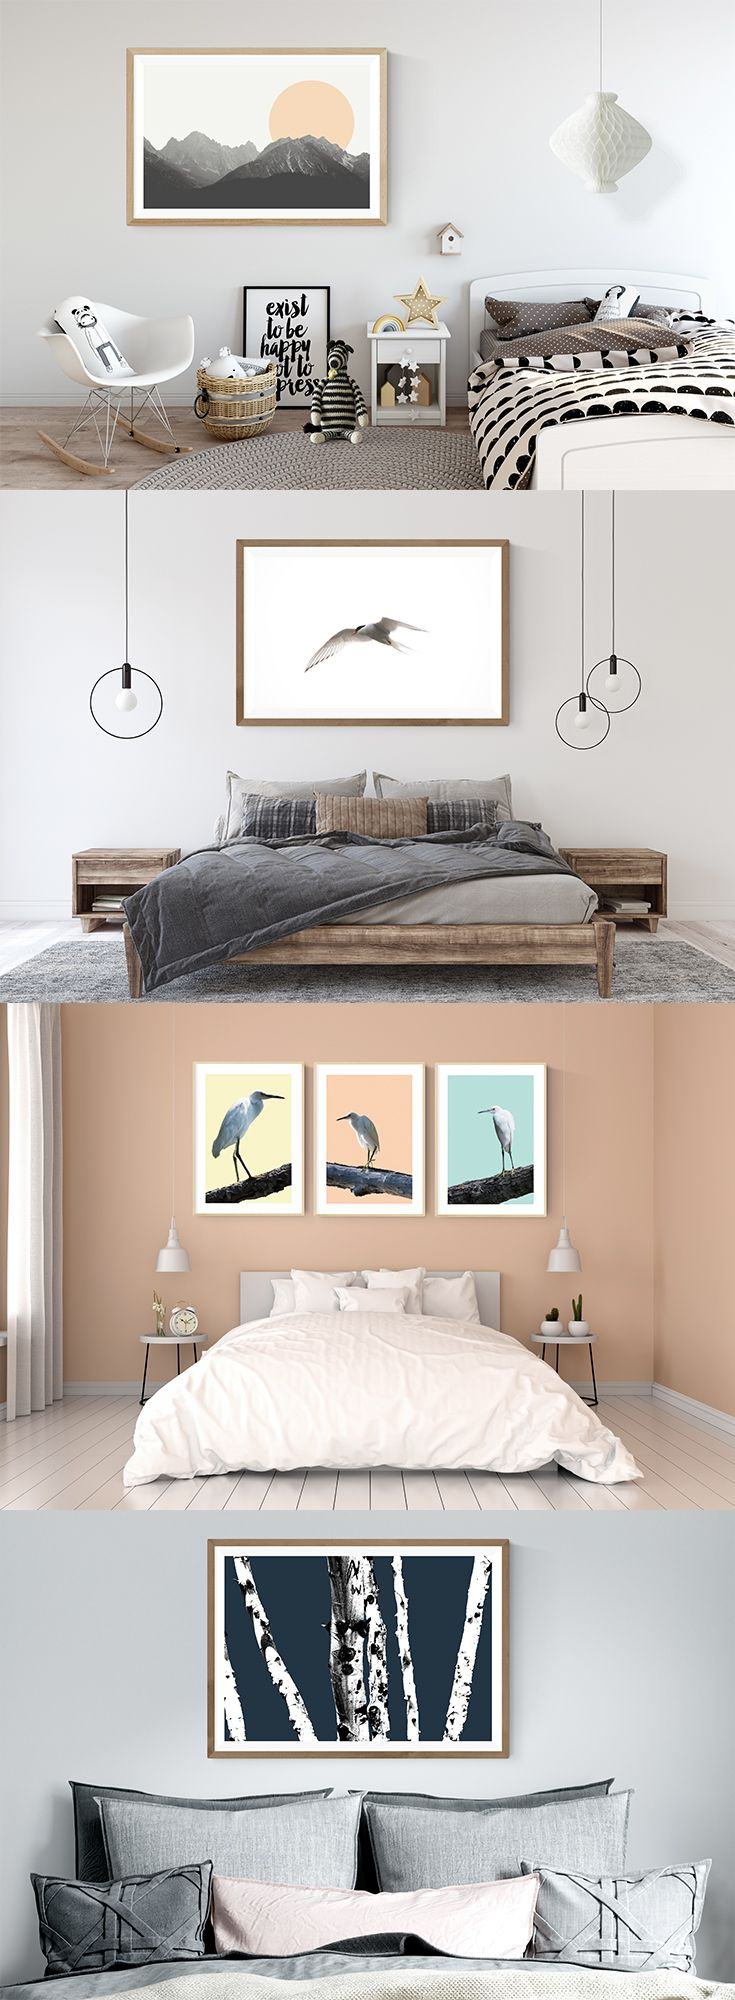 A Beautiful Print Can Help To Anchor The Decor In Any Room In Your Home If You Are Looking For Master Bedroom Art In 2020 Master Bedroom Art Bedroom Wall Bedroom Art